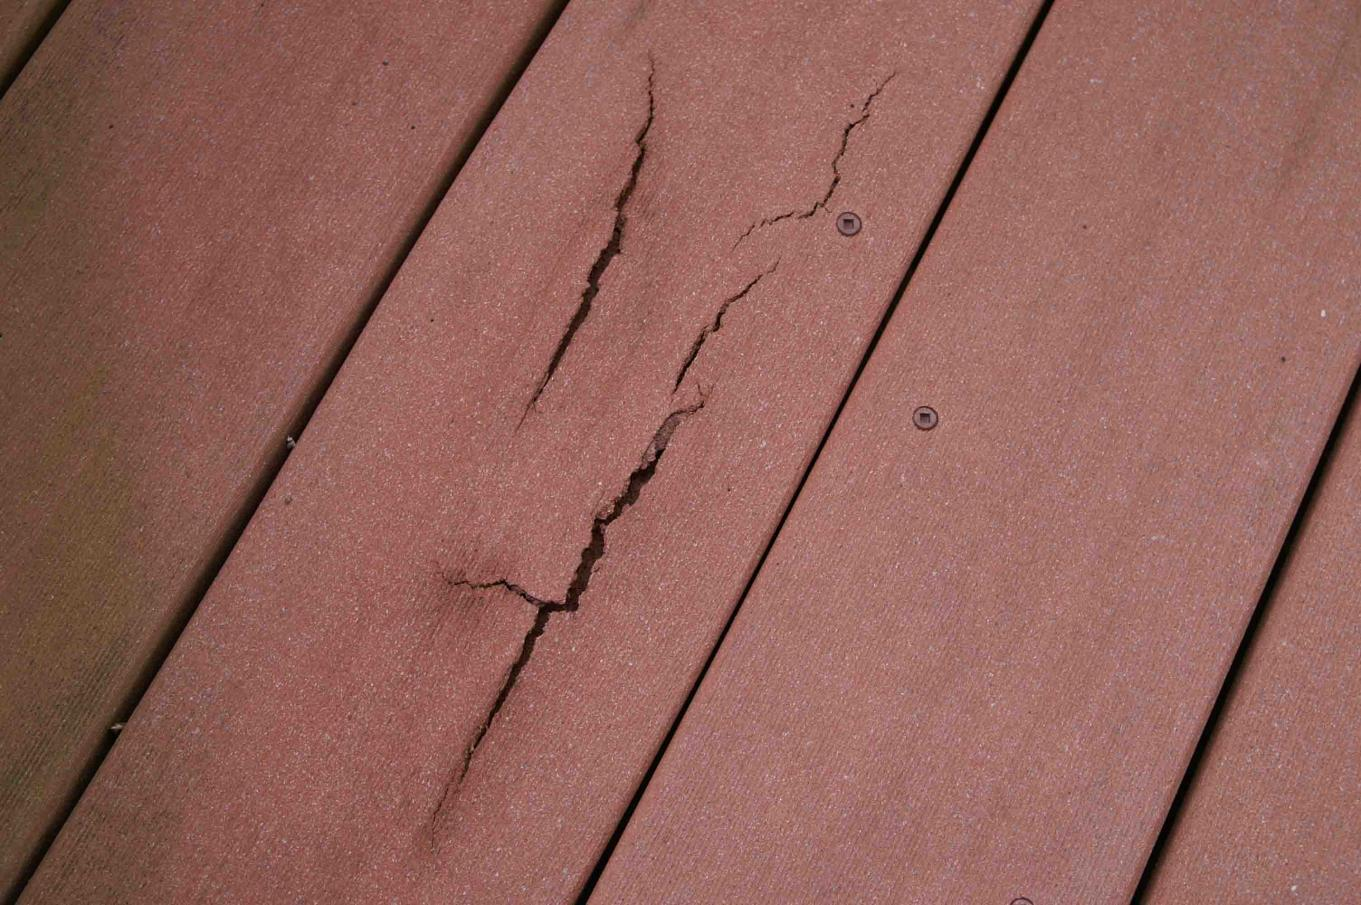 Weatherbest composite decking any good?-weatherbest_edited-1.jpg